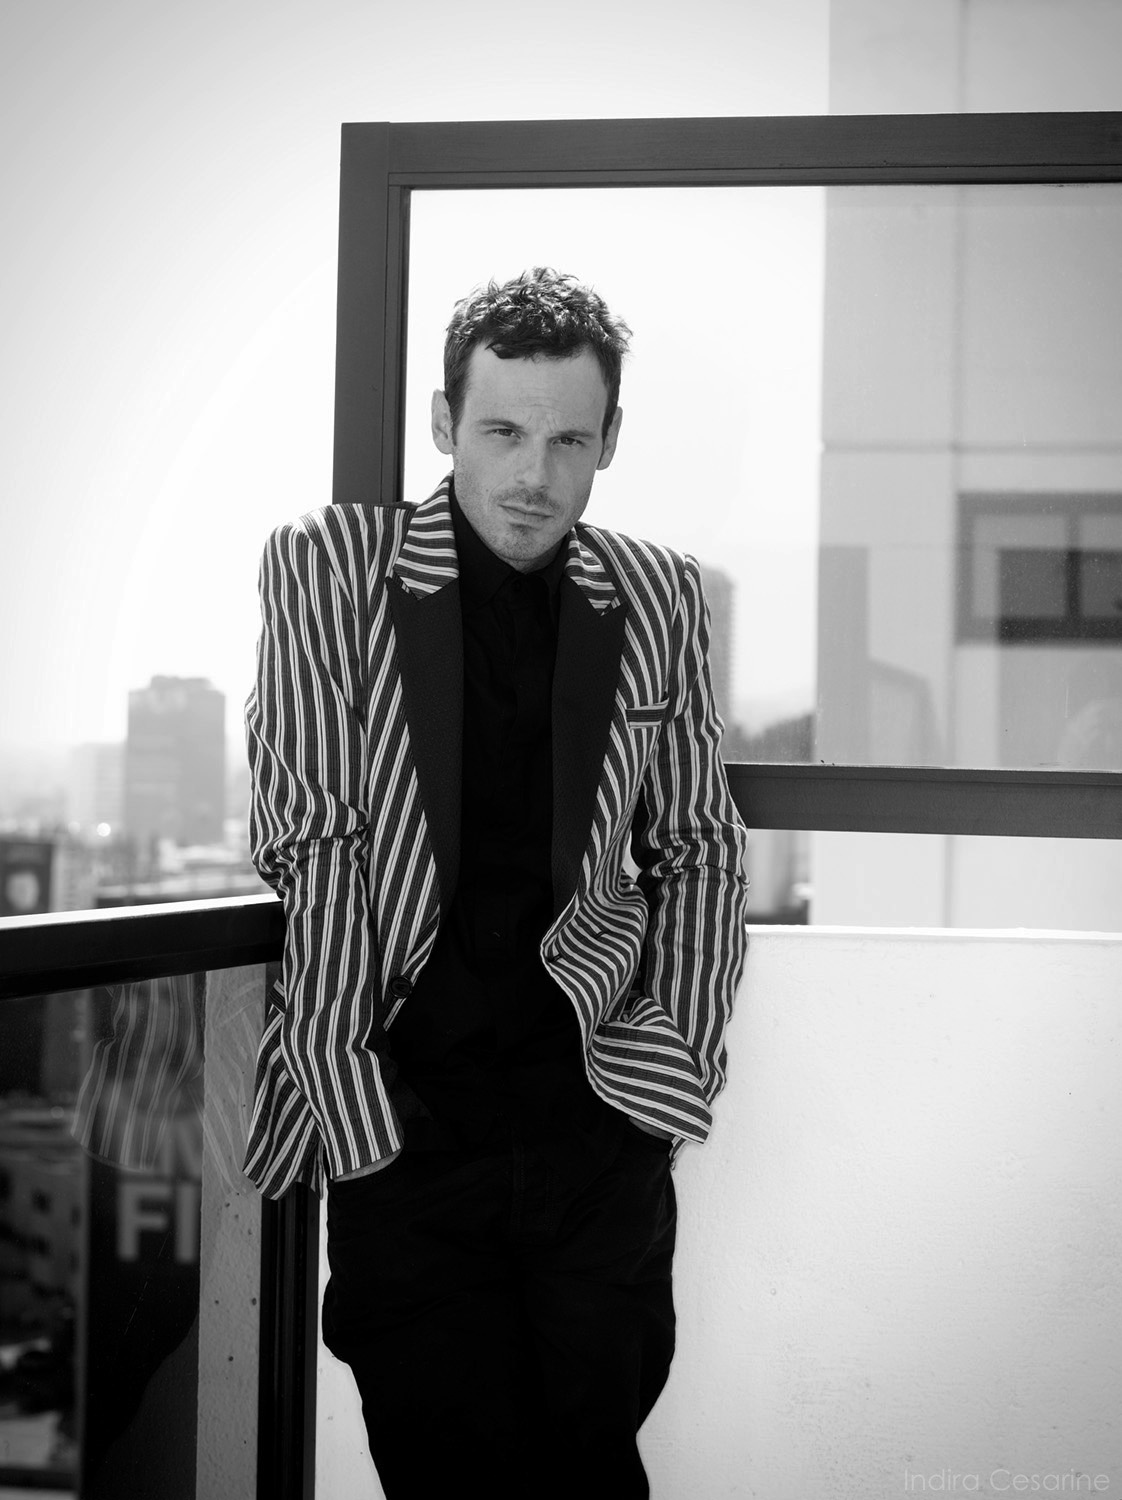 Scoot-McNairy-Photography-by-Indira-Cesarine-019-bw.jpg